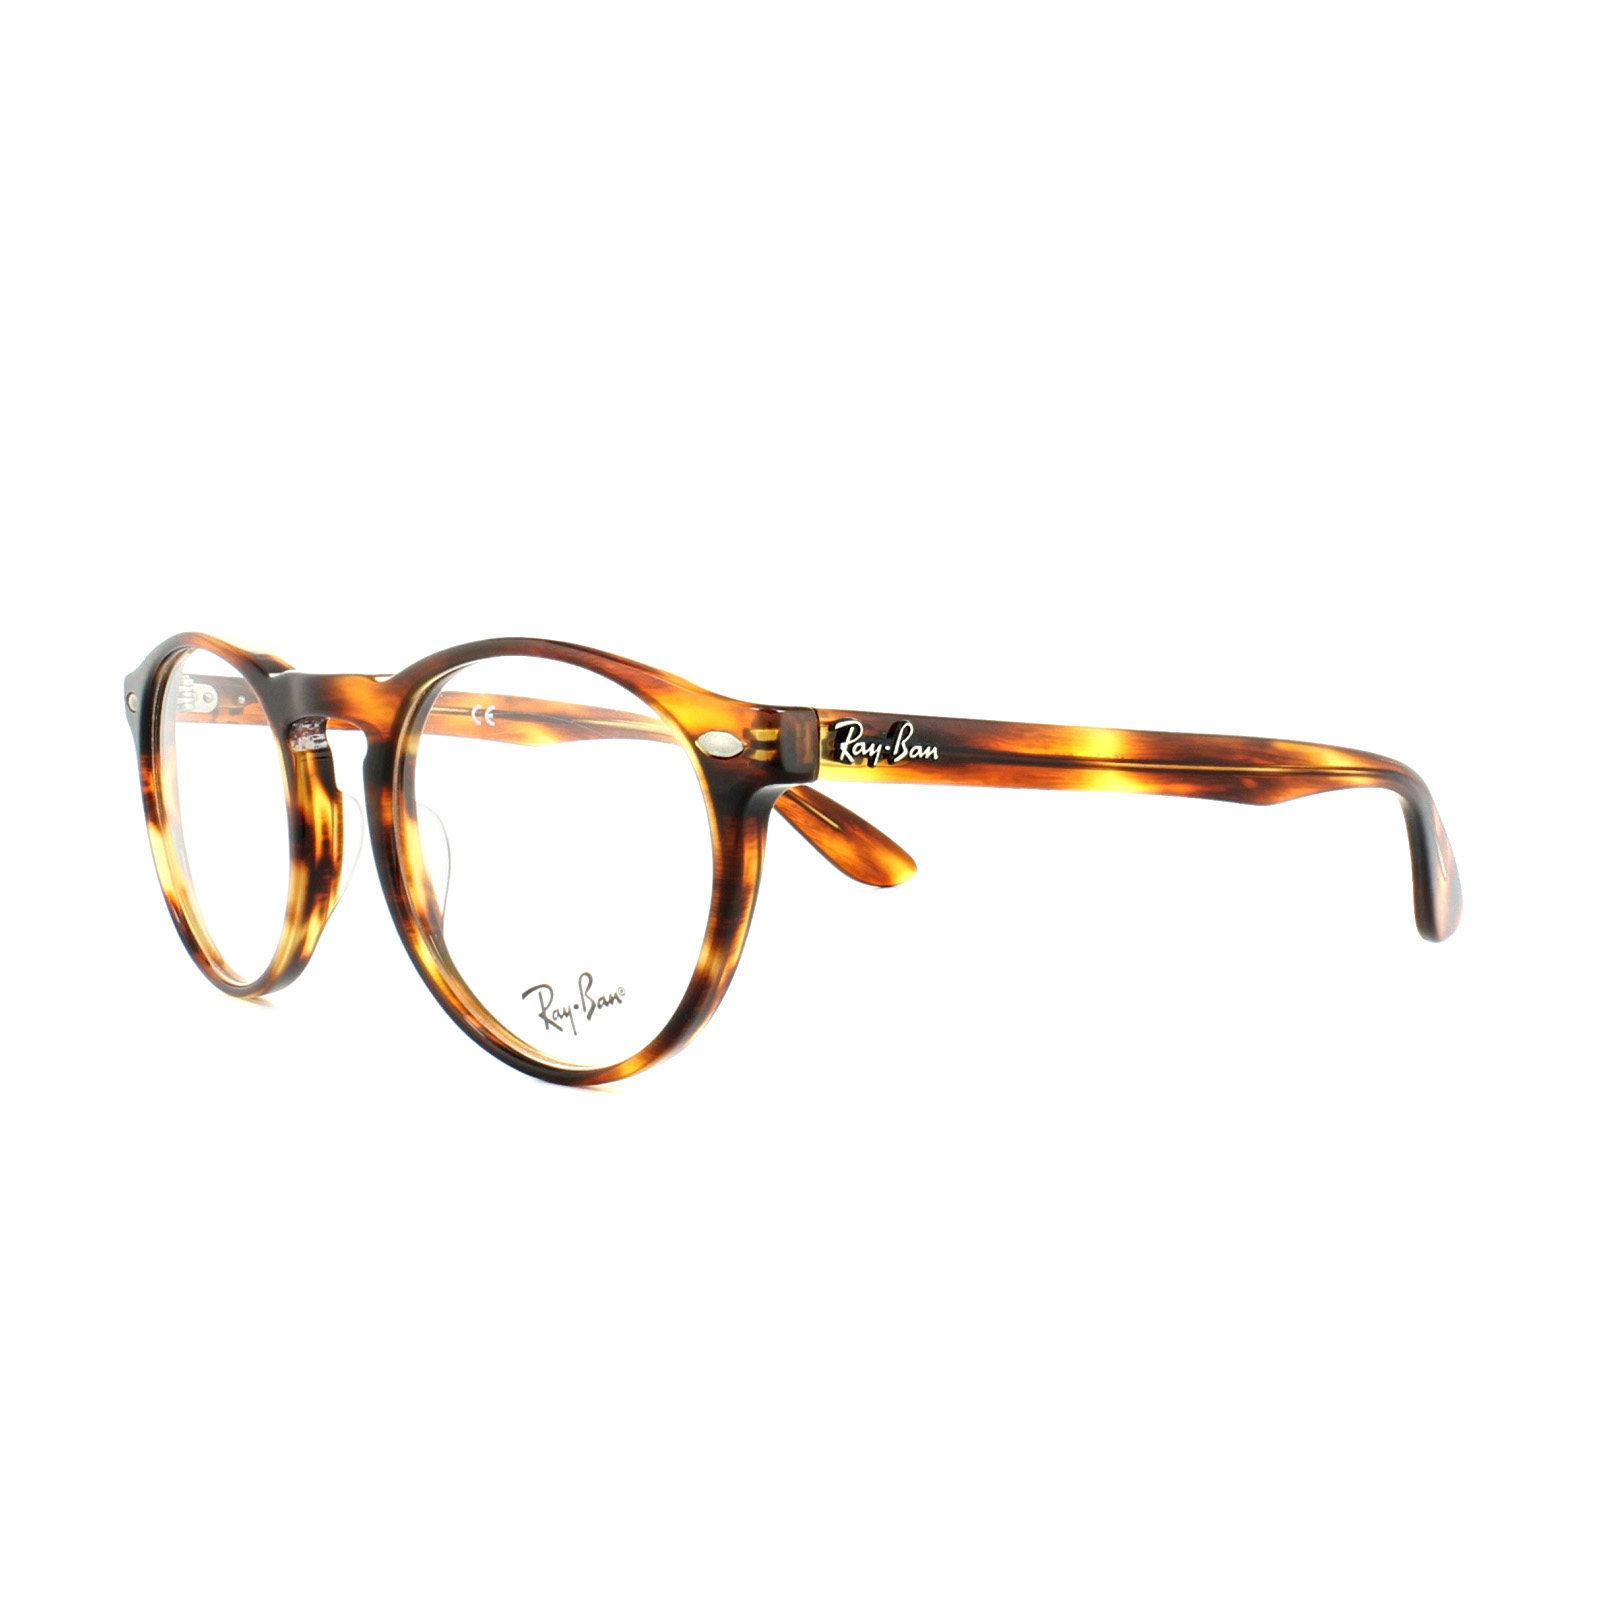 254884c405a Sentinel Ray-Ban Glasses Frames 5283 2144 Striped Havana Mens Womens 49mm